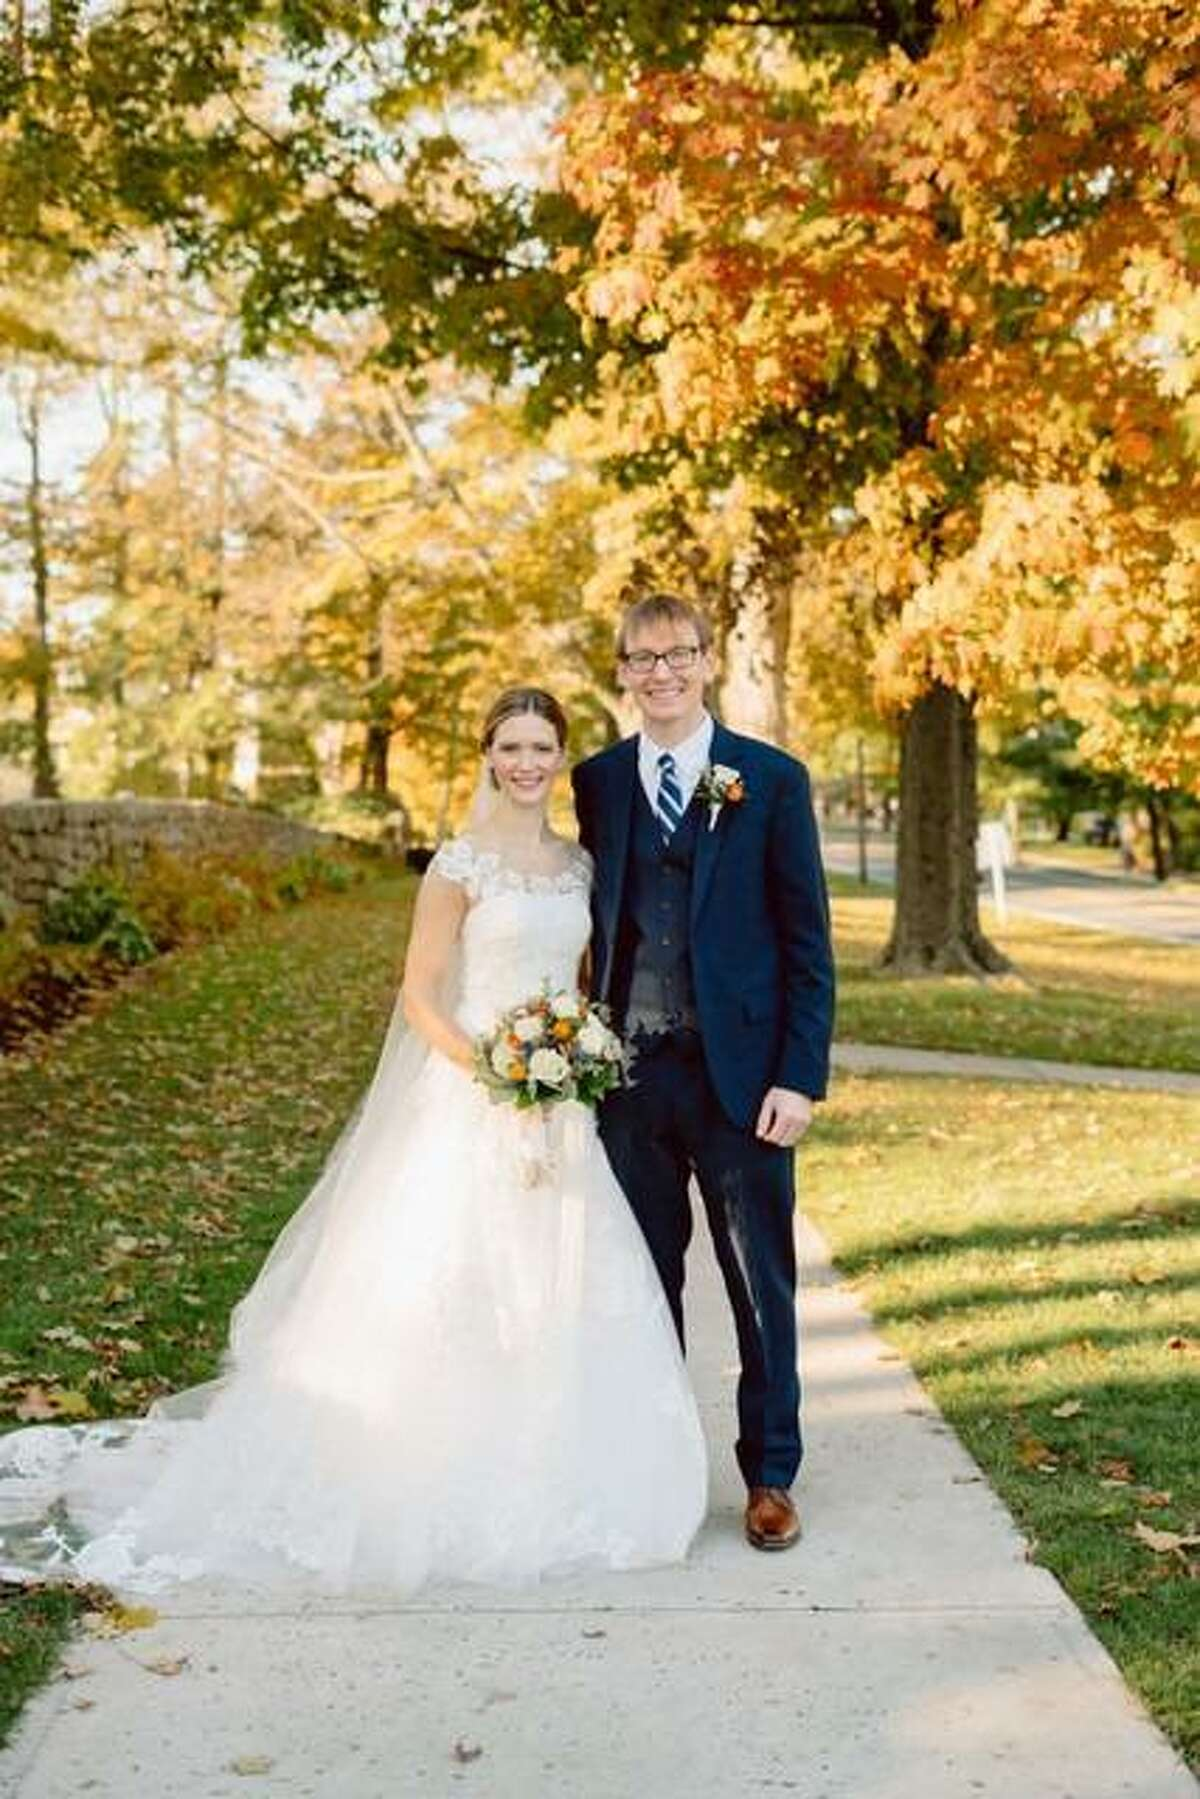 Sarah Hunter Forcheski, the daughter of Joan and Carl Forcheski, of Ridgefield, married Michael James Misencik, the son of Barbara and James Misencik, of Trumbull, on Saturday, Oct. 17, 2020, a perfectly clear and sun-splashed autumn day.